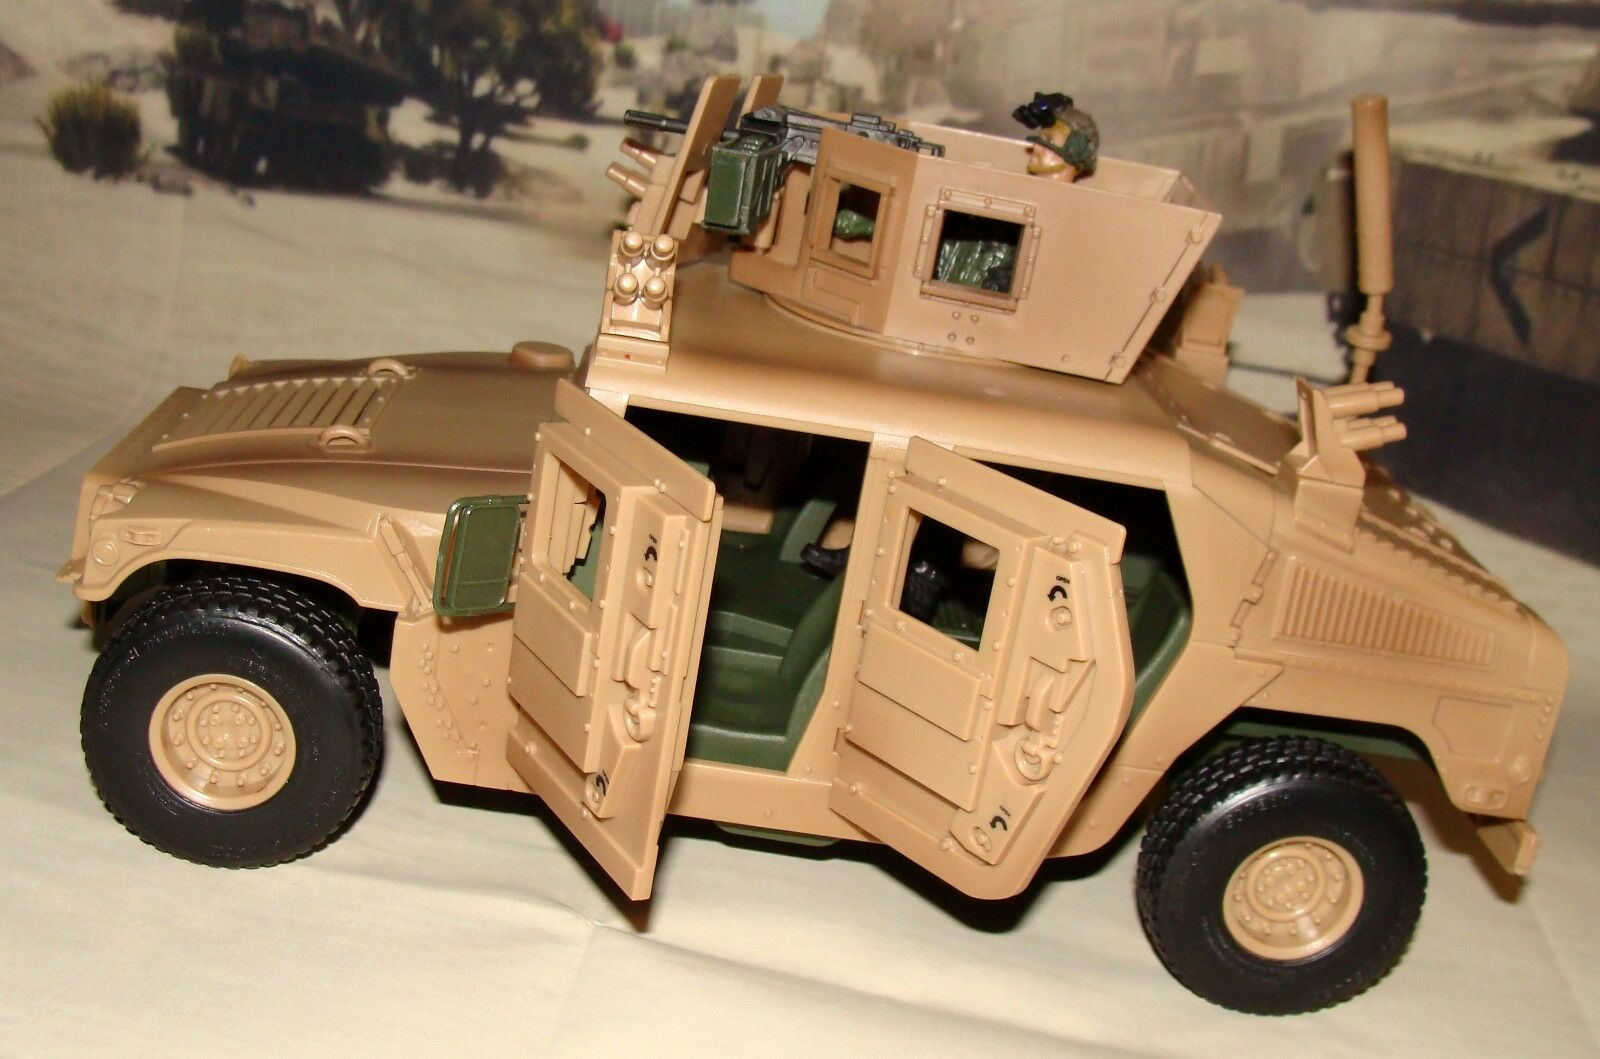 Military Toys Elite Force 1 18 : Bbi elite force us army armored m up humvee